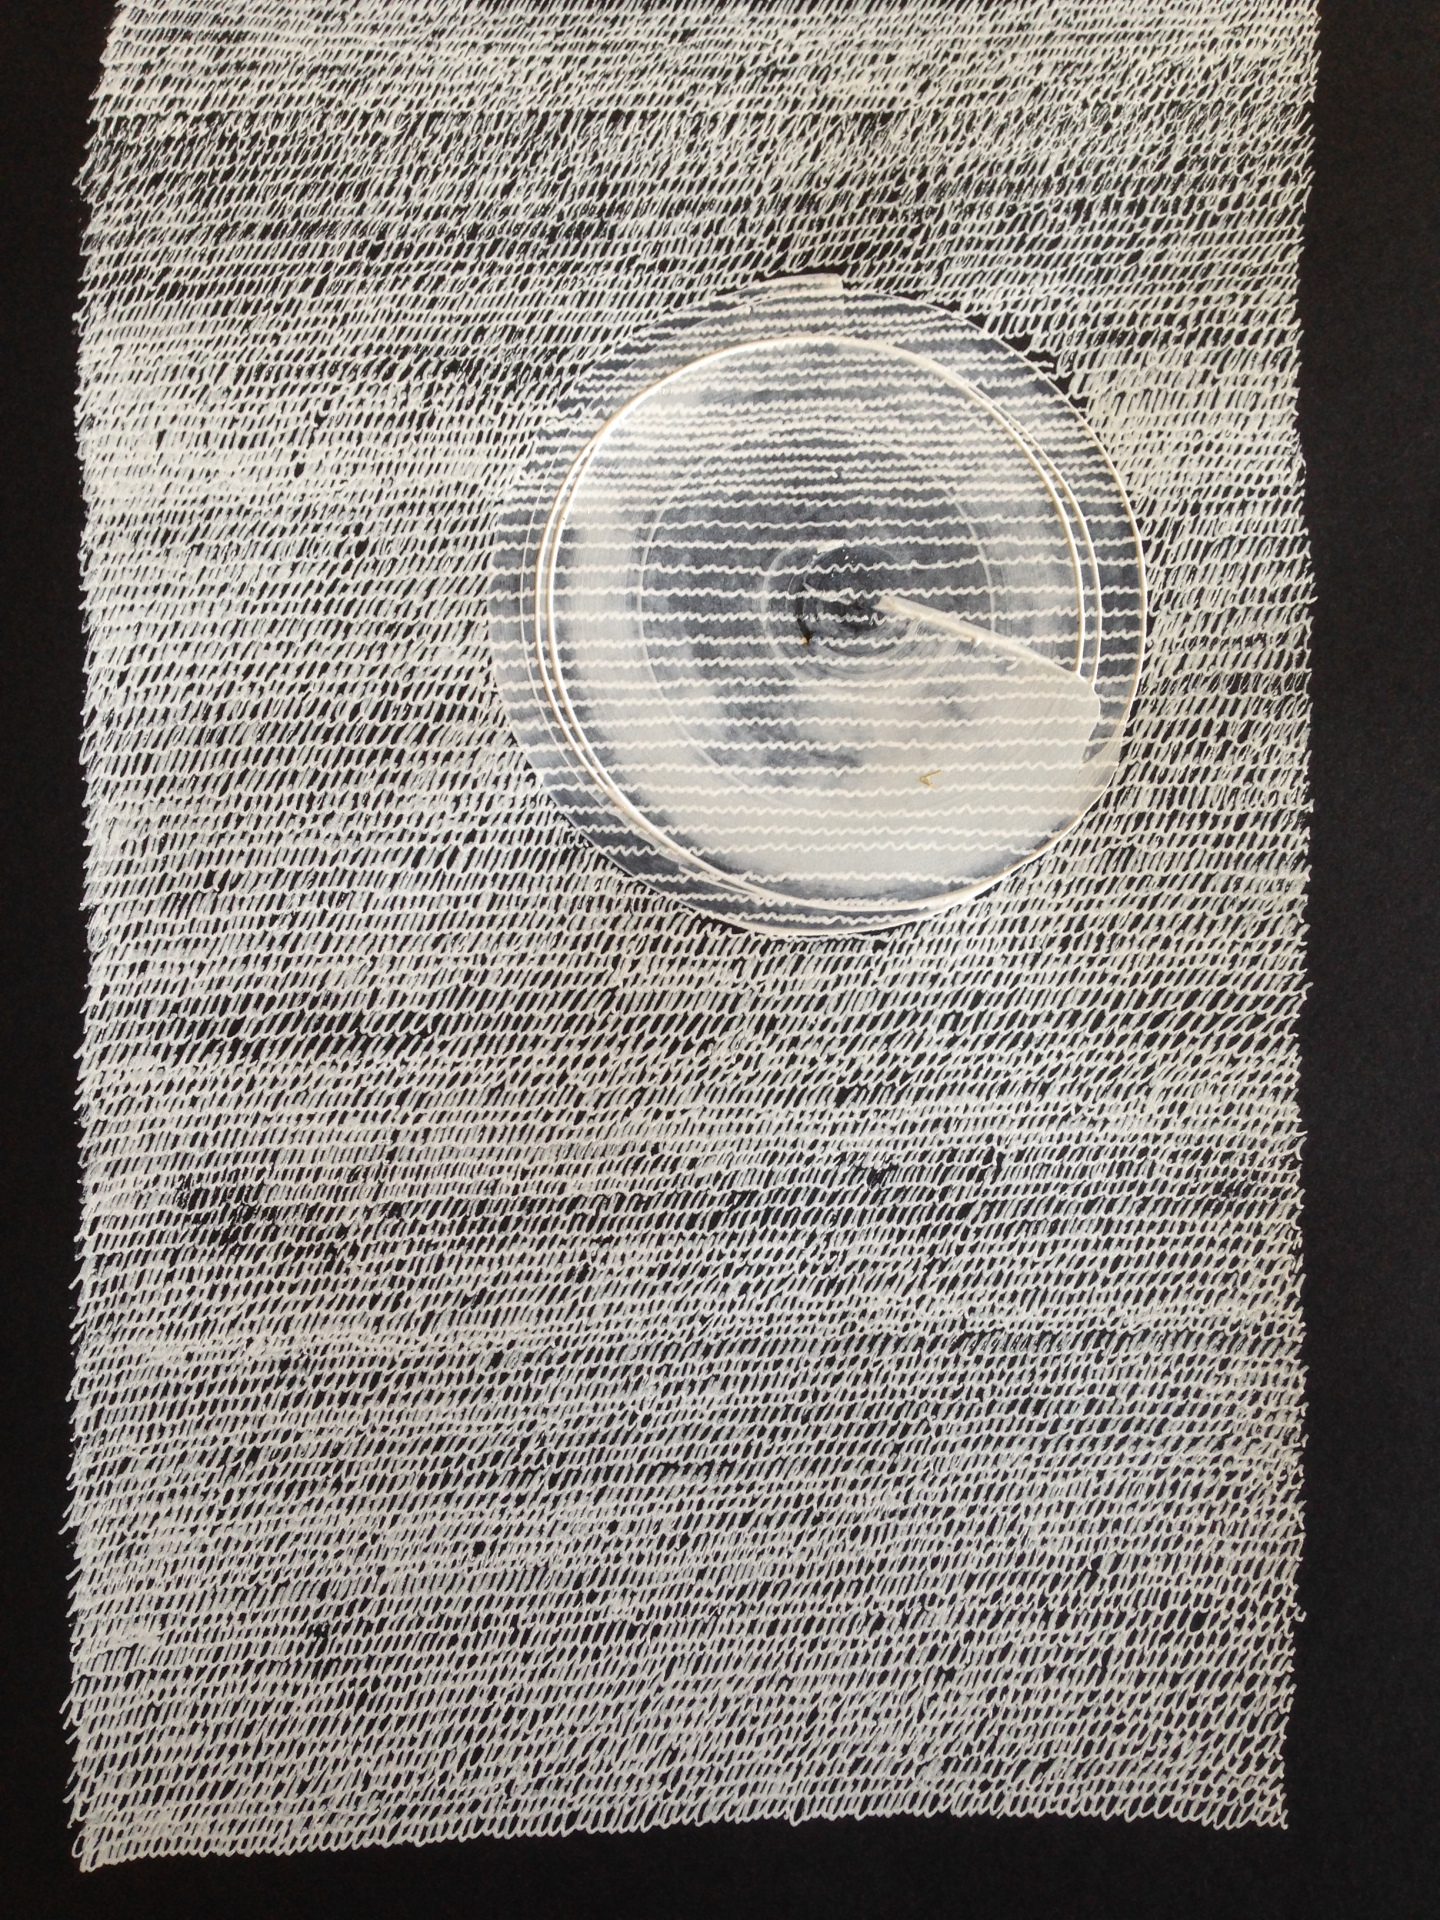 Knitted Wordblanket Covering A Claustrophobic Planet